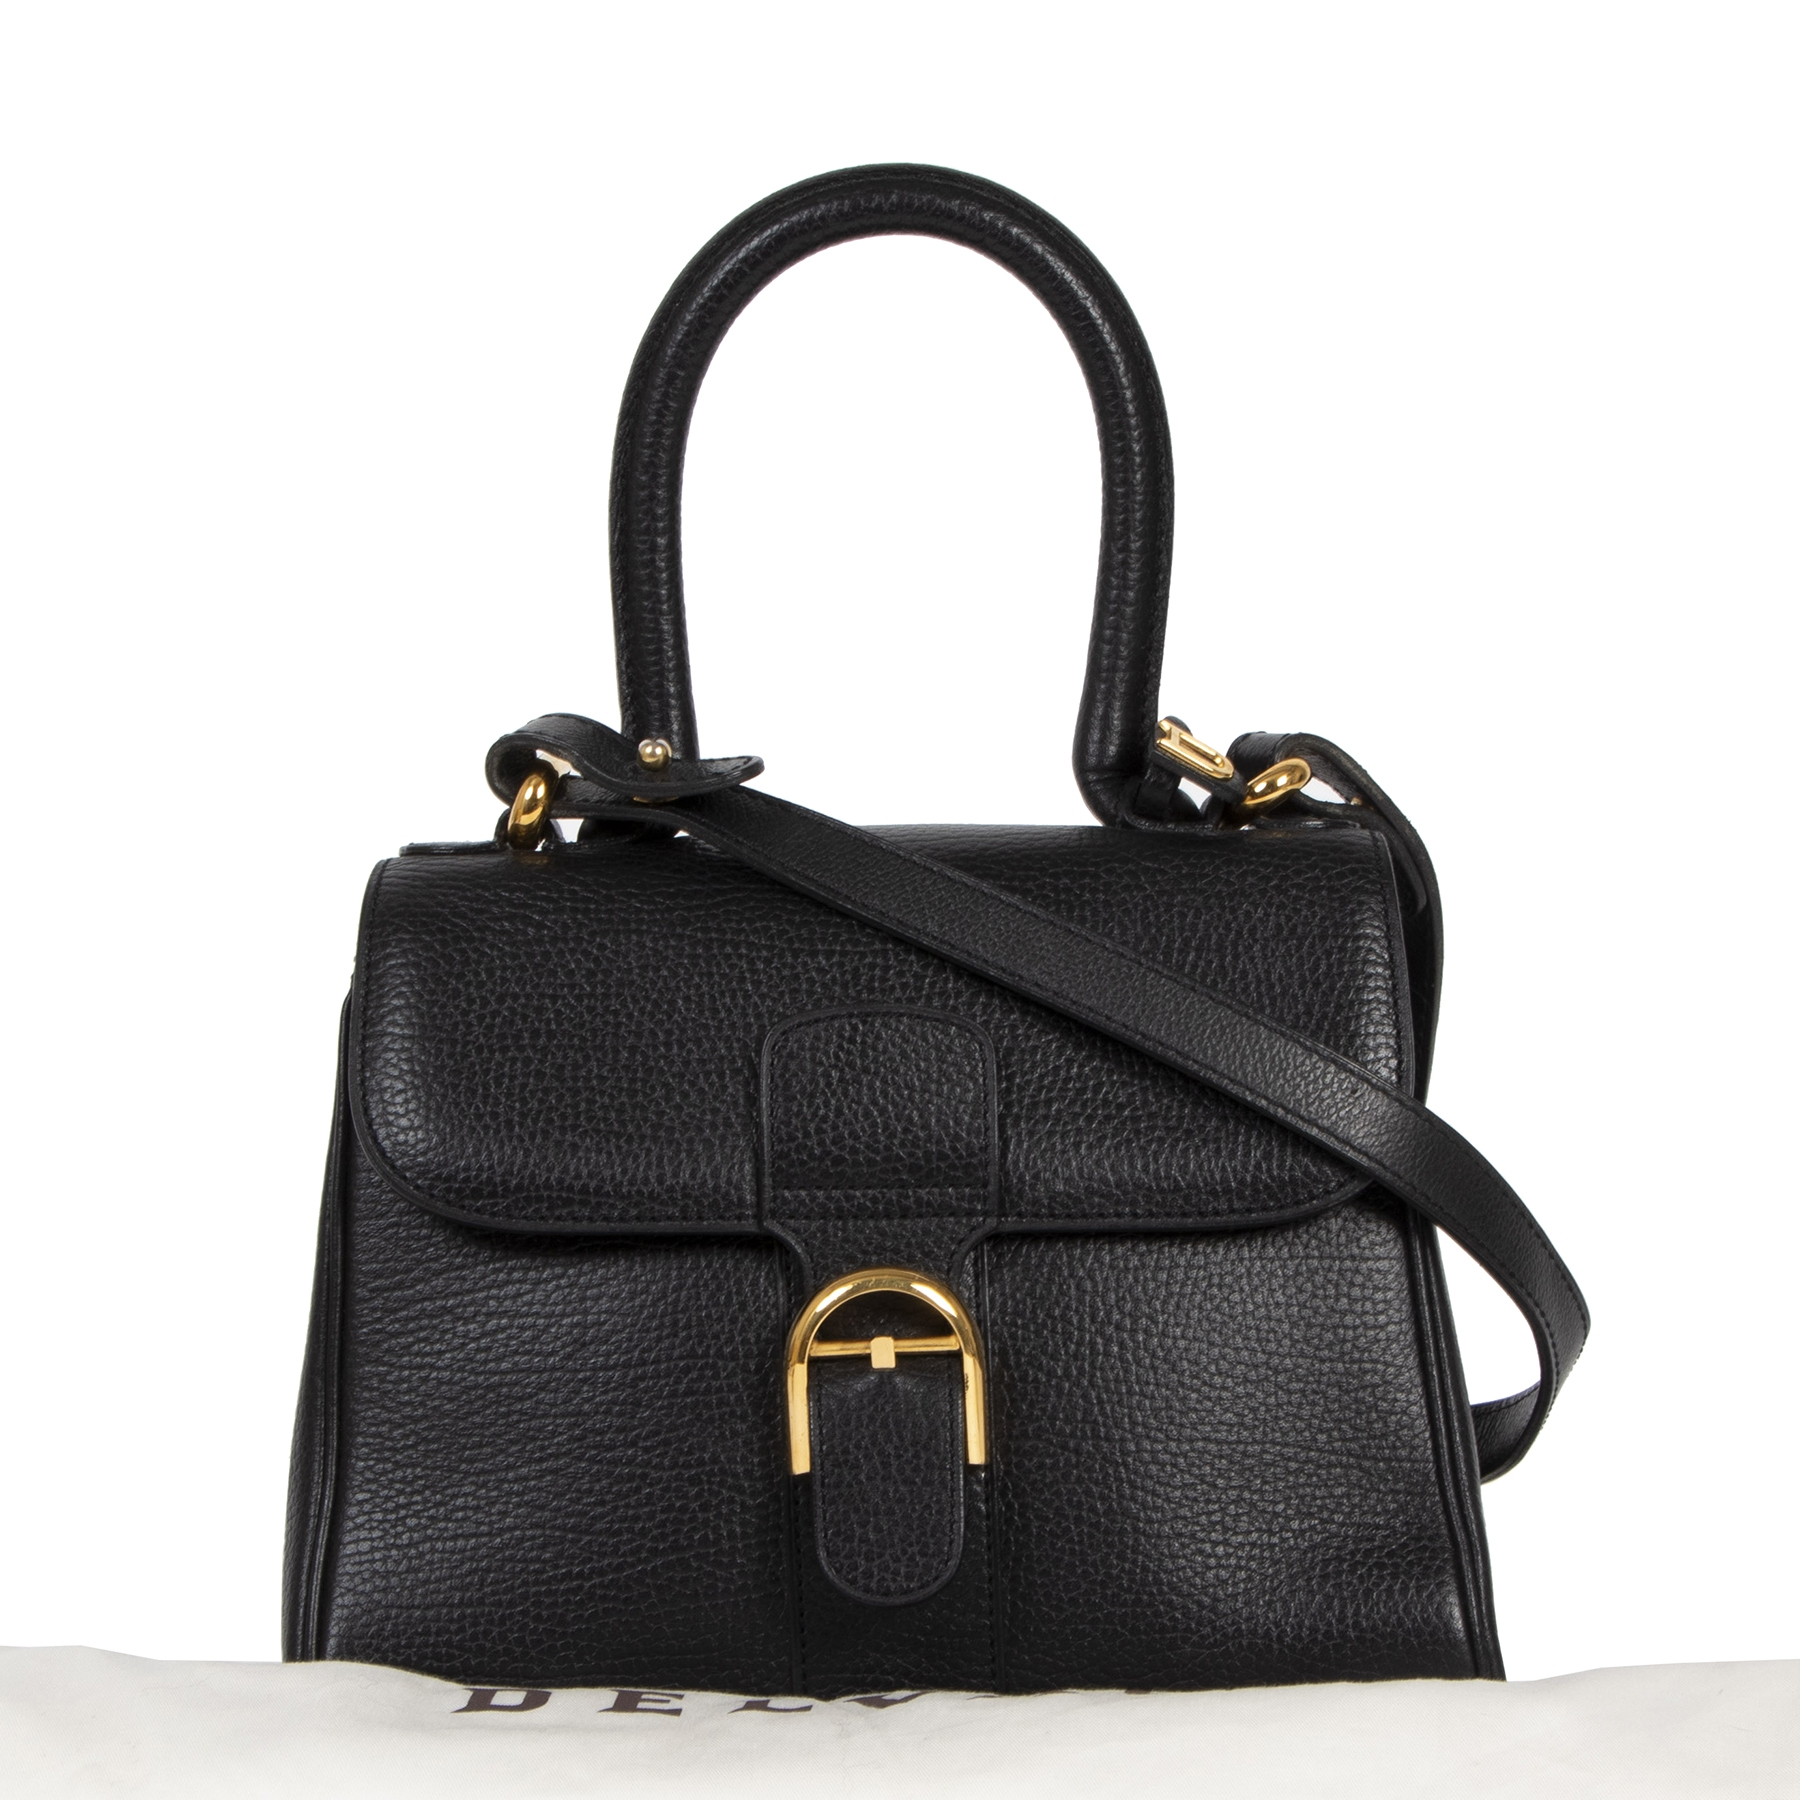 Authentieke tweedehands vintage Delvaux Black Mini Brillant Bag koop online webshop LabelLOV